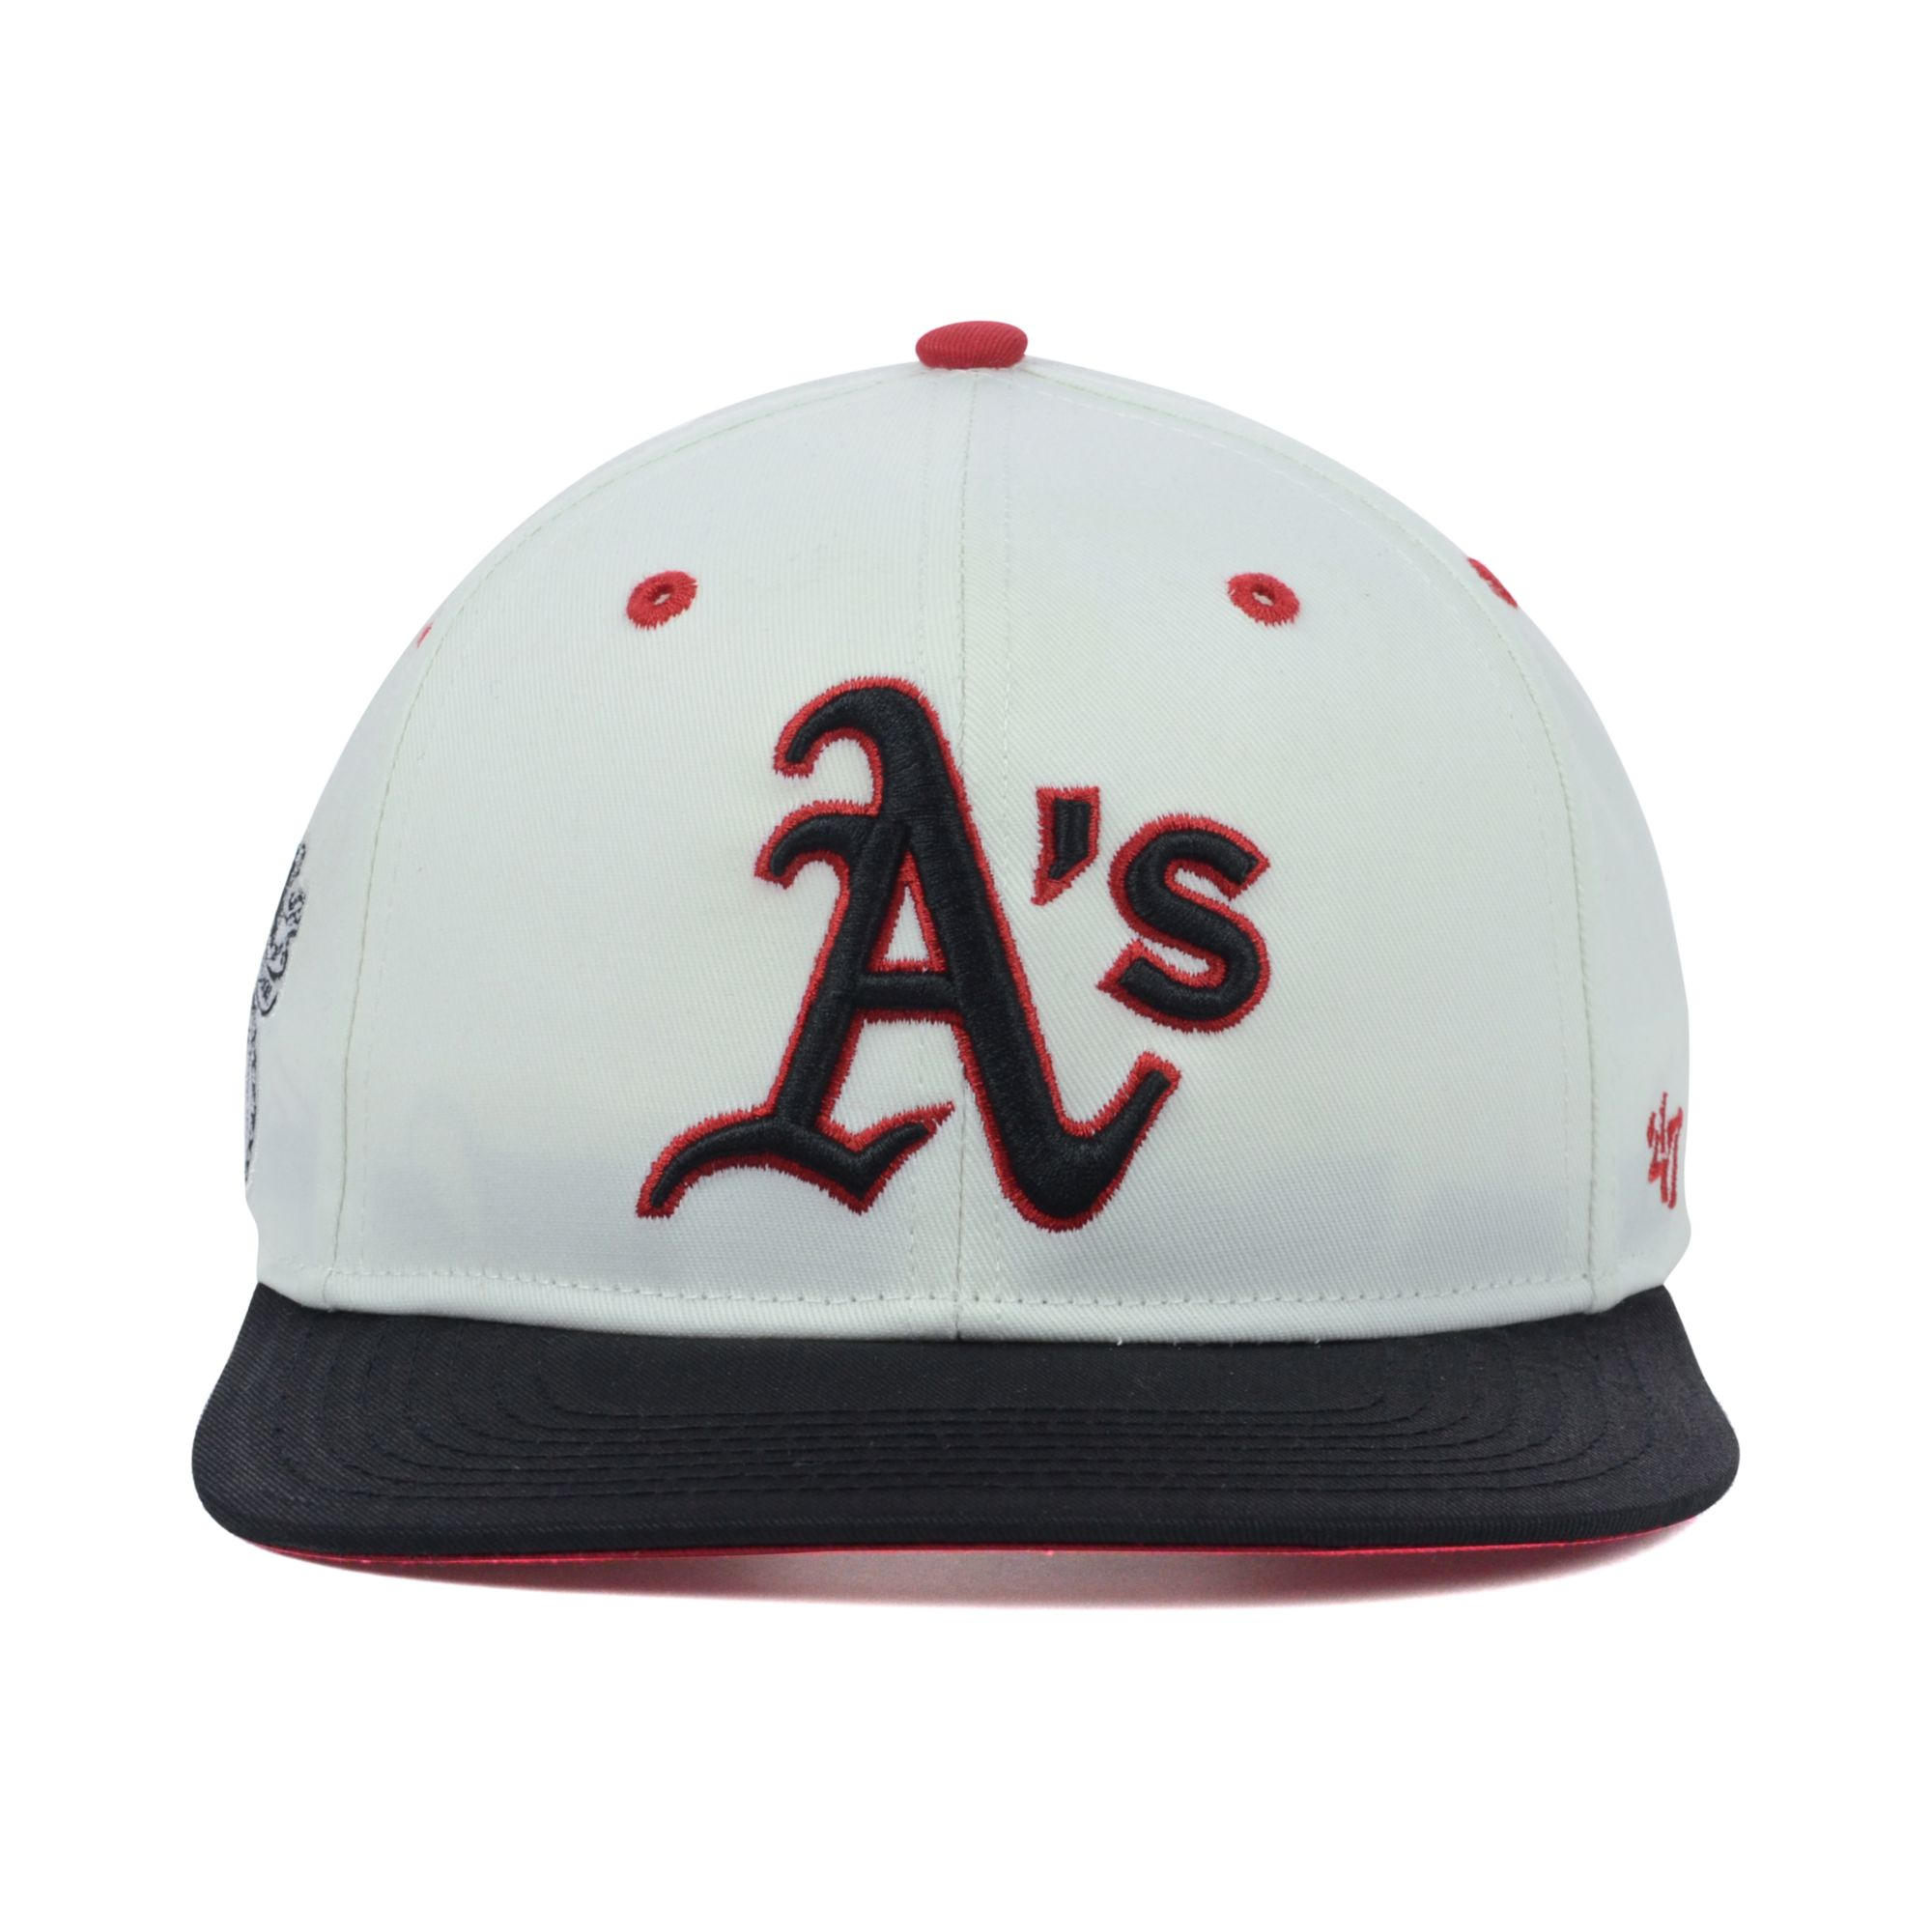 reputable site 9eff0 59019 italy jackie robinson 47 clean up cap 20910217 larger image 37f20 992a7   norway lyst 47 brand oakland athletics red under snapback cap in white  9c630 127cf